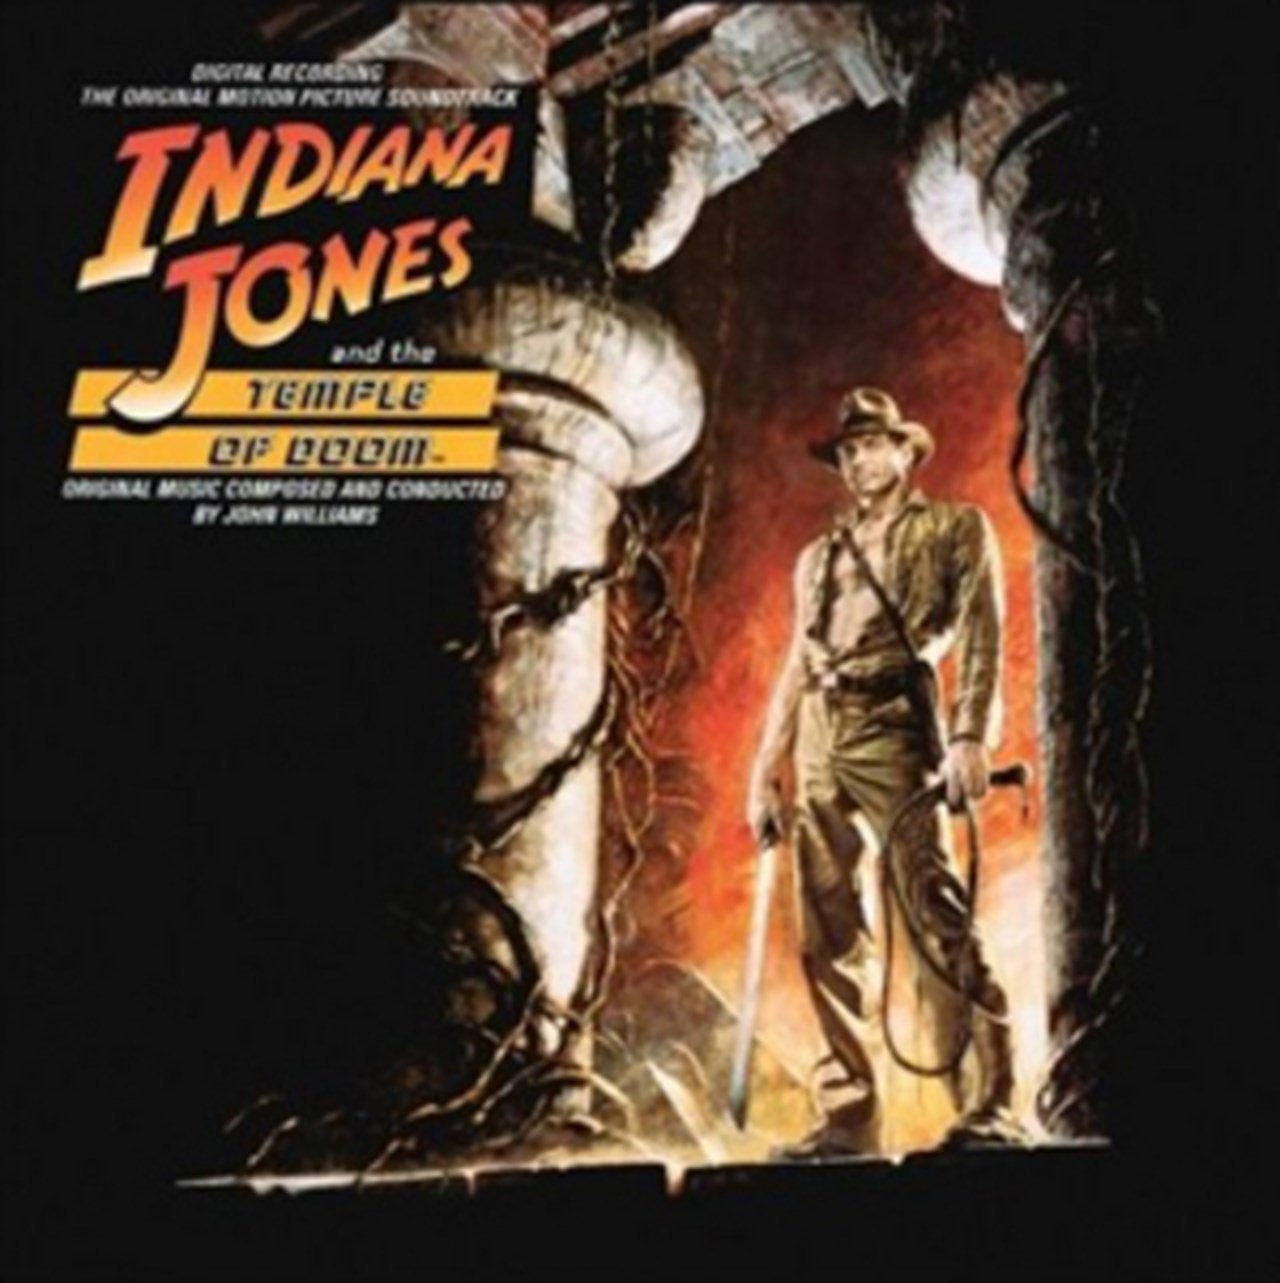 Indiana Jones and the Temple of Doom - 1